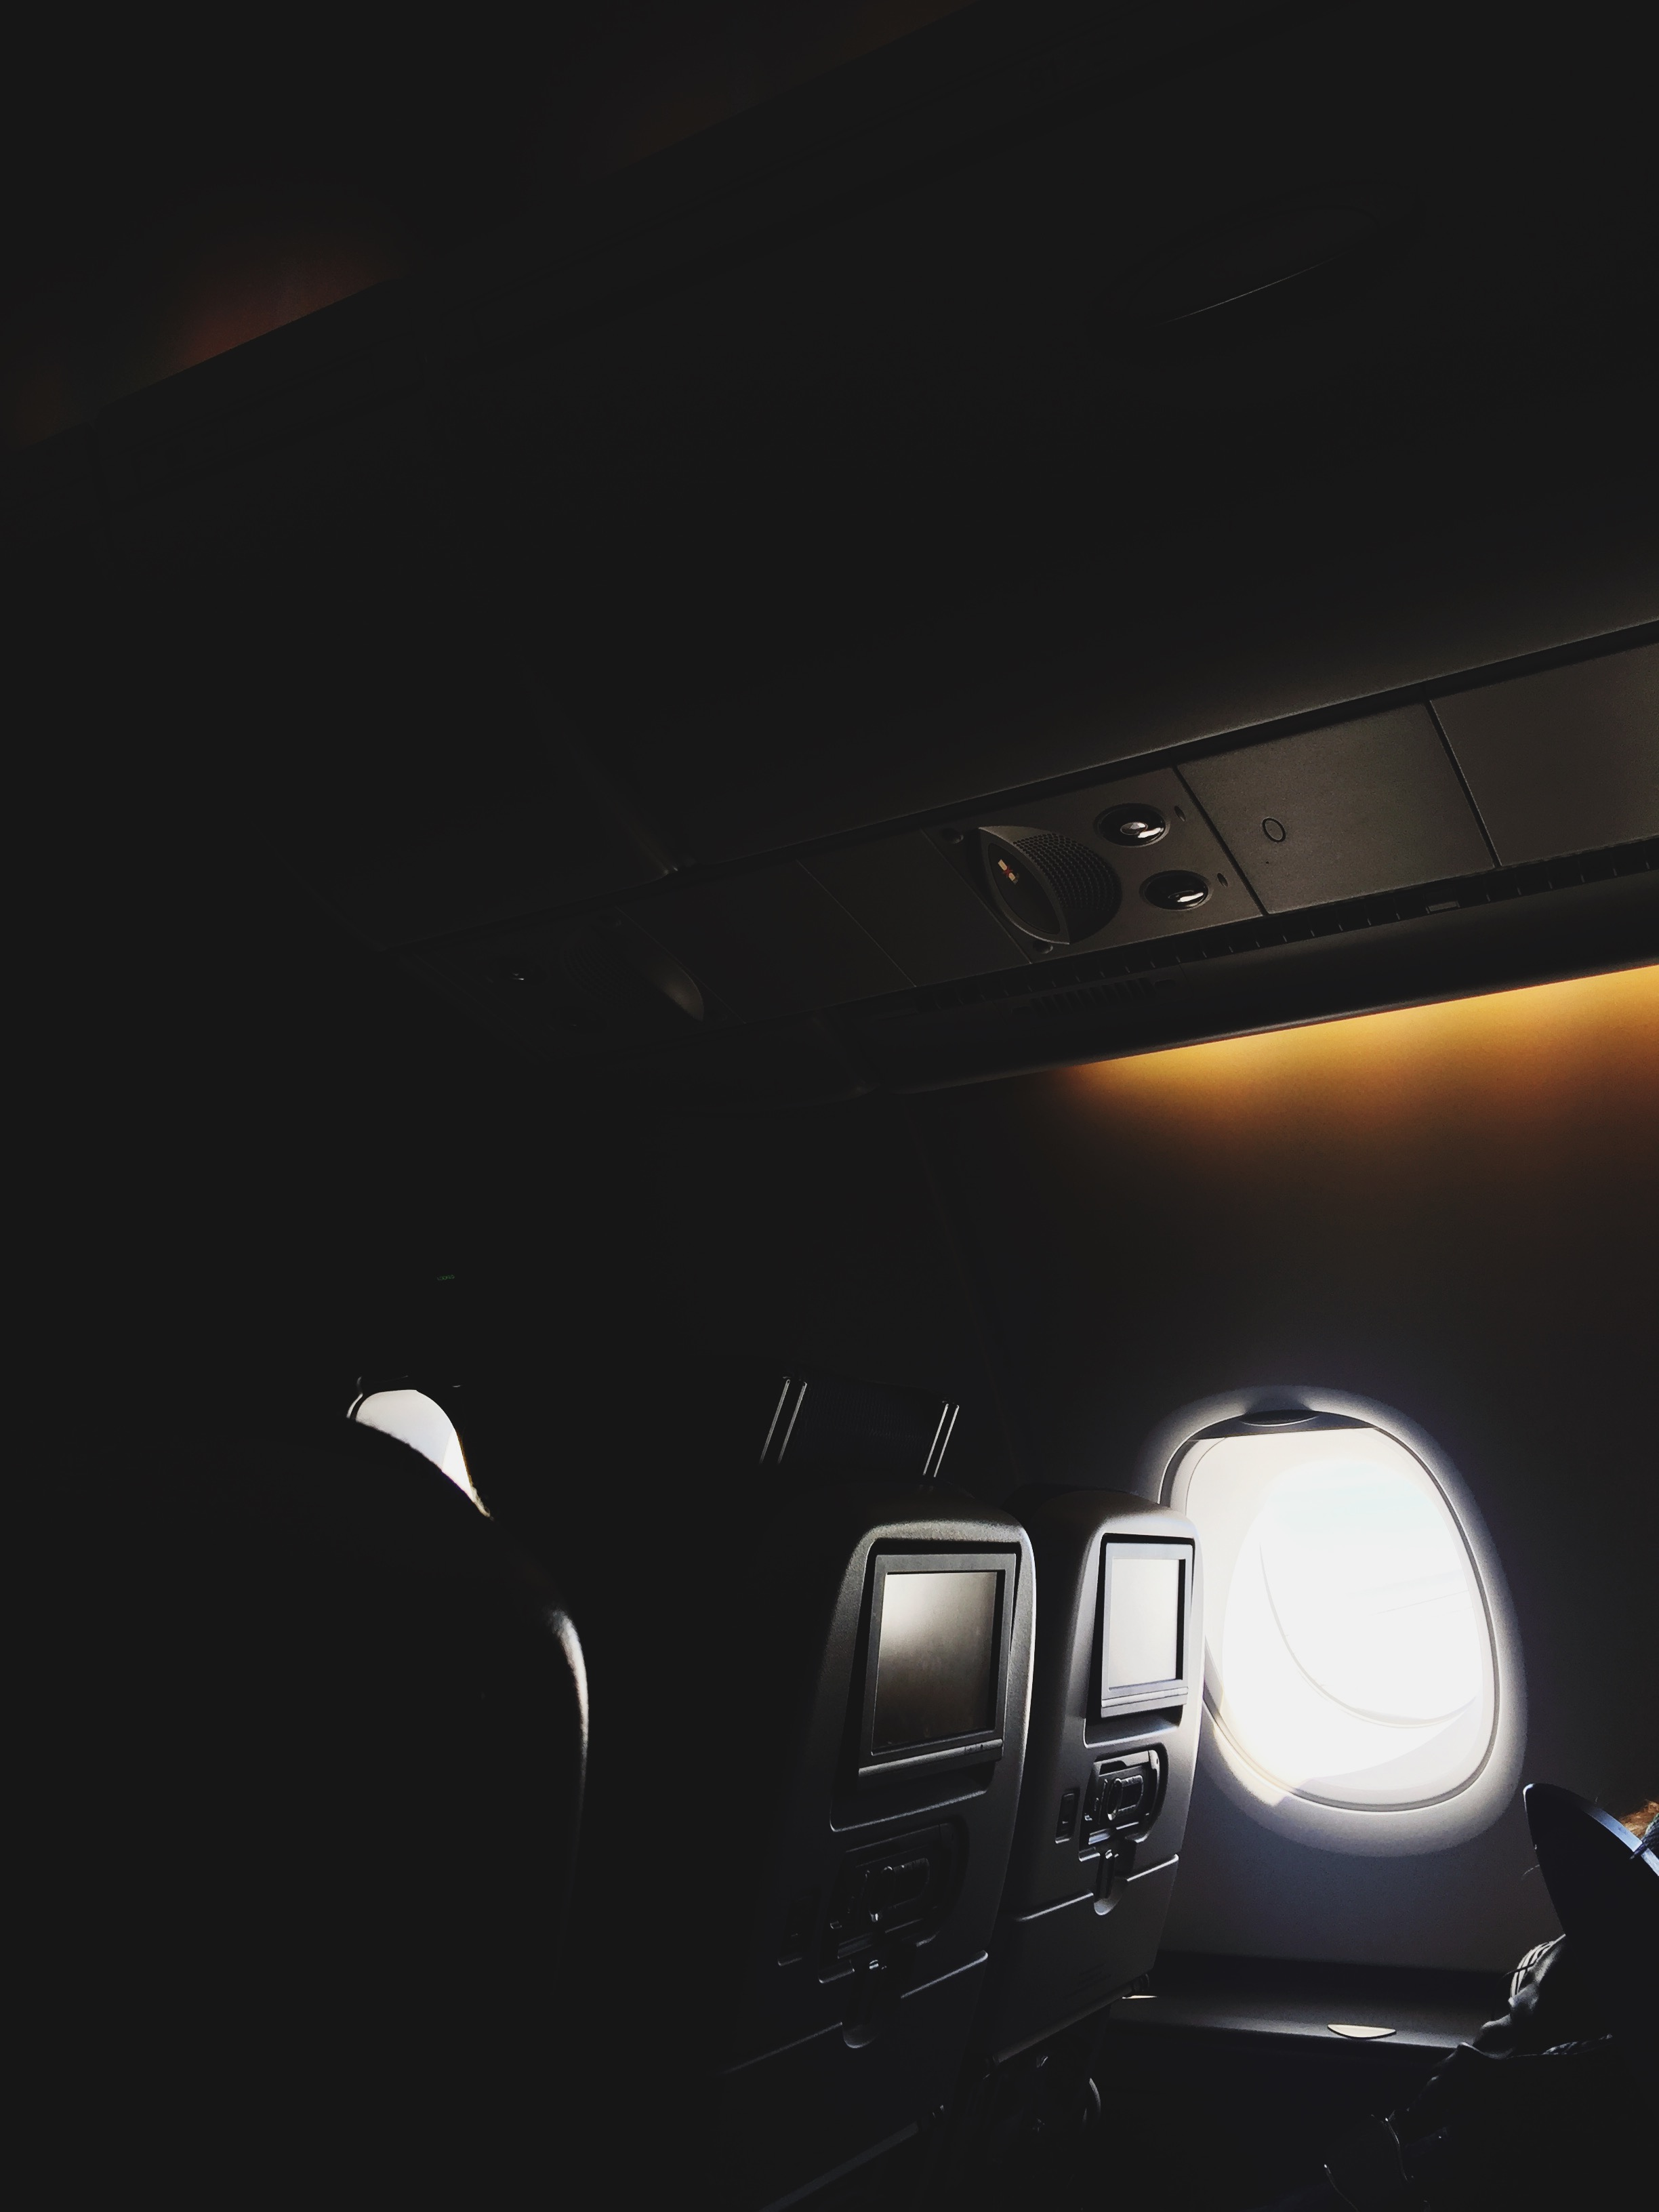 Processed with VSCO with 4 preset Processed with VSCO with 4 preset